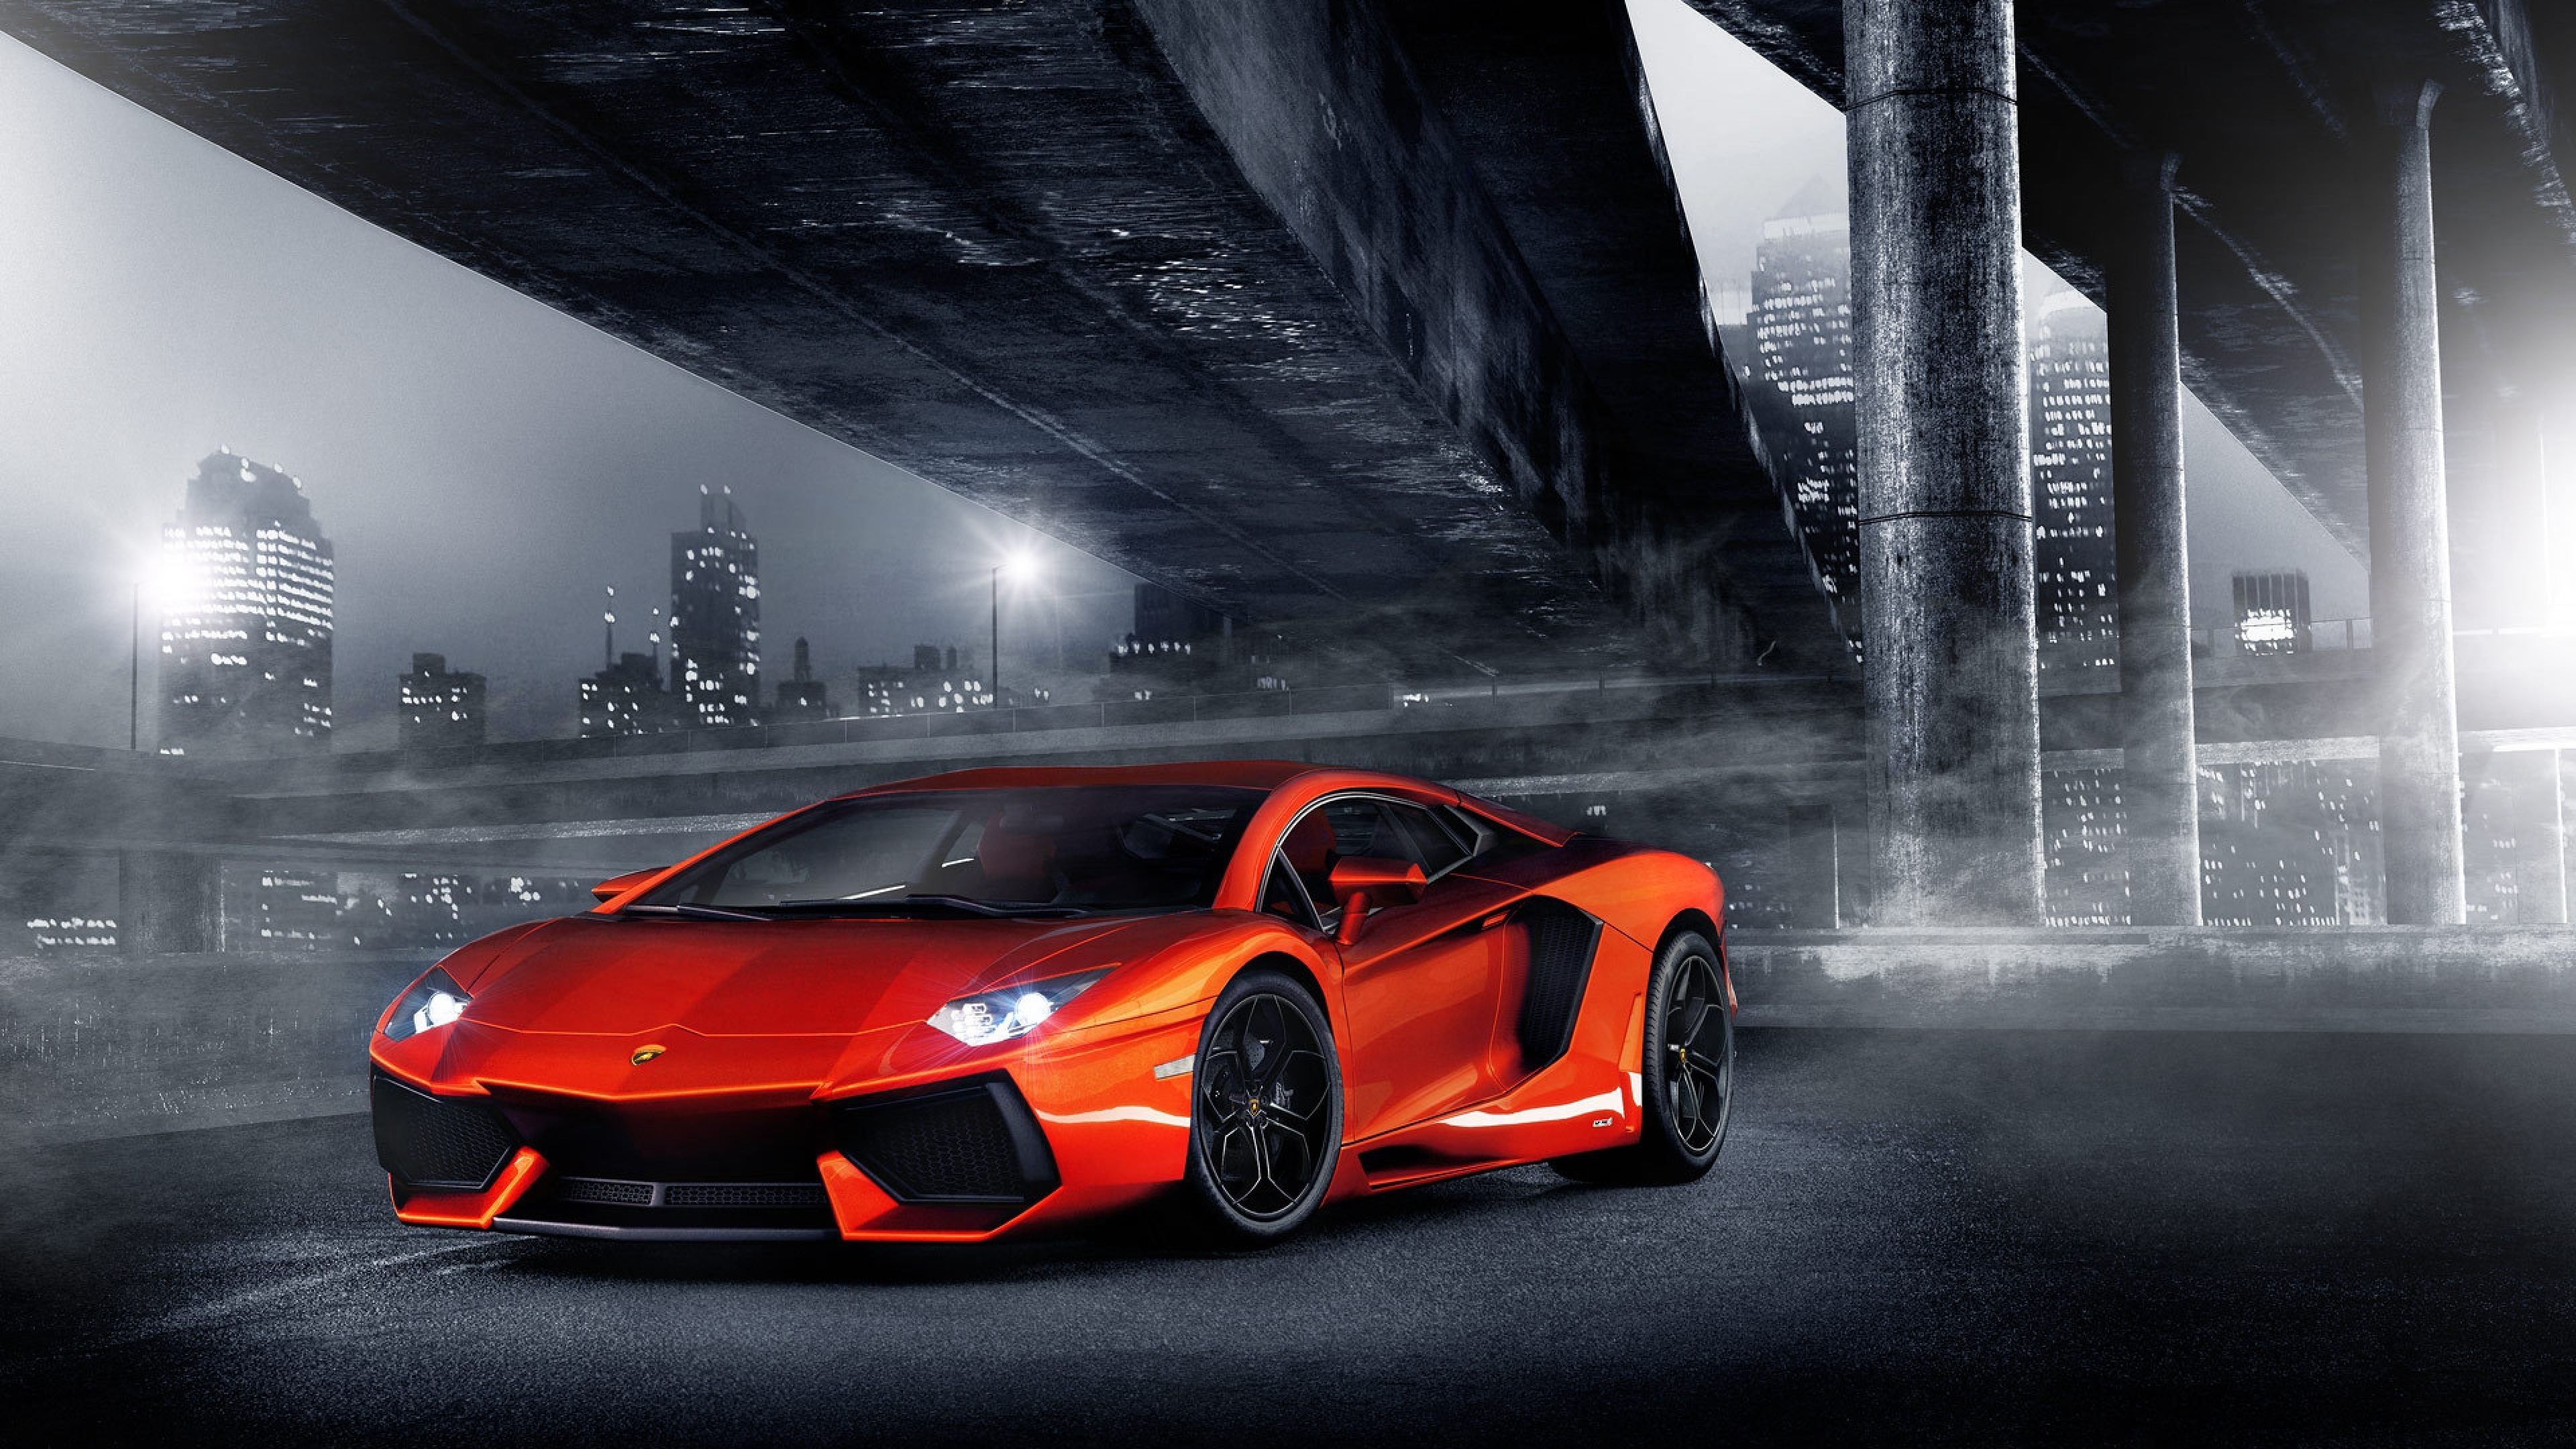 Lamborghini Aventador at Night HD desktop wallpaper Widescreen